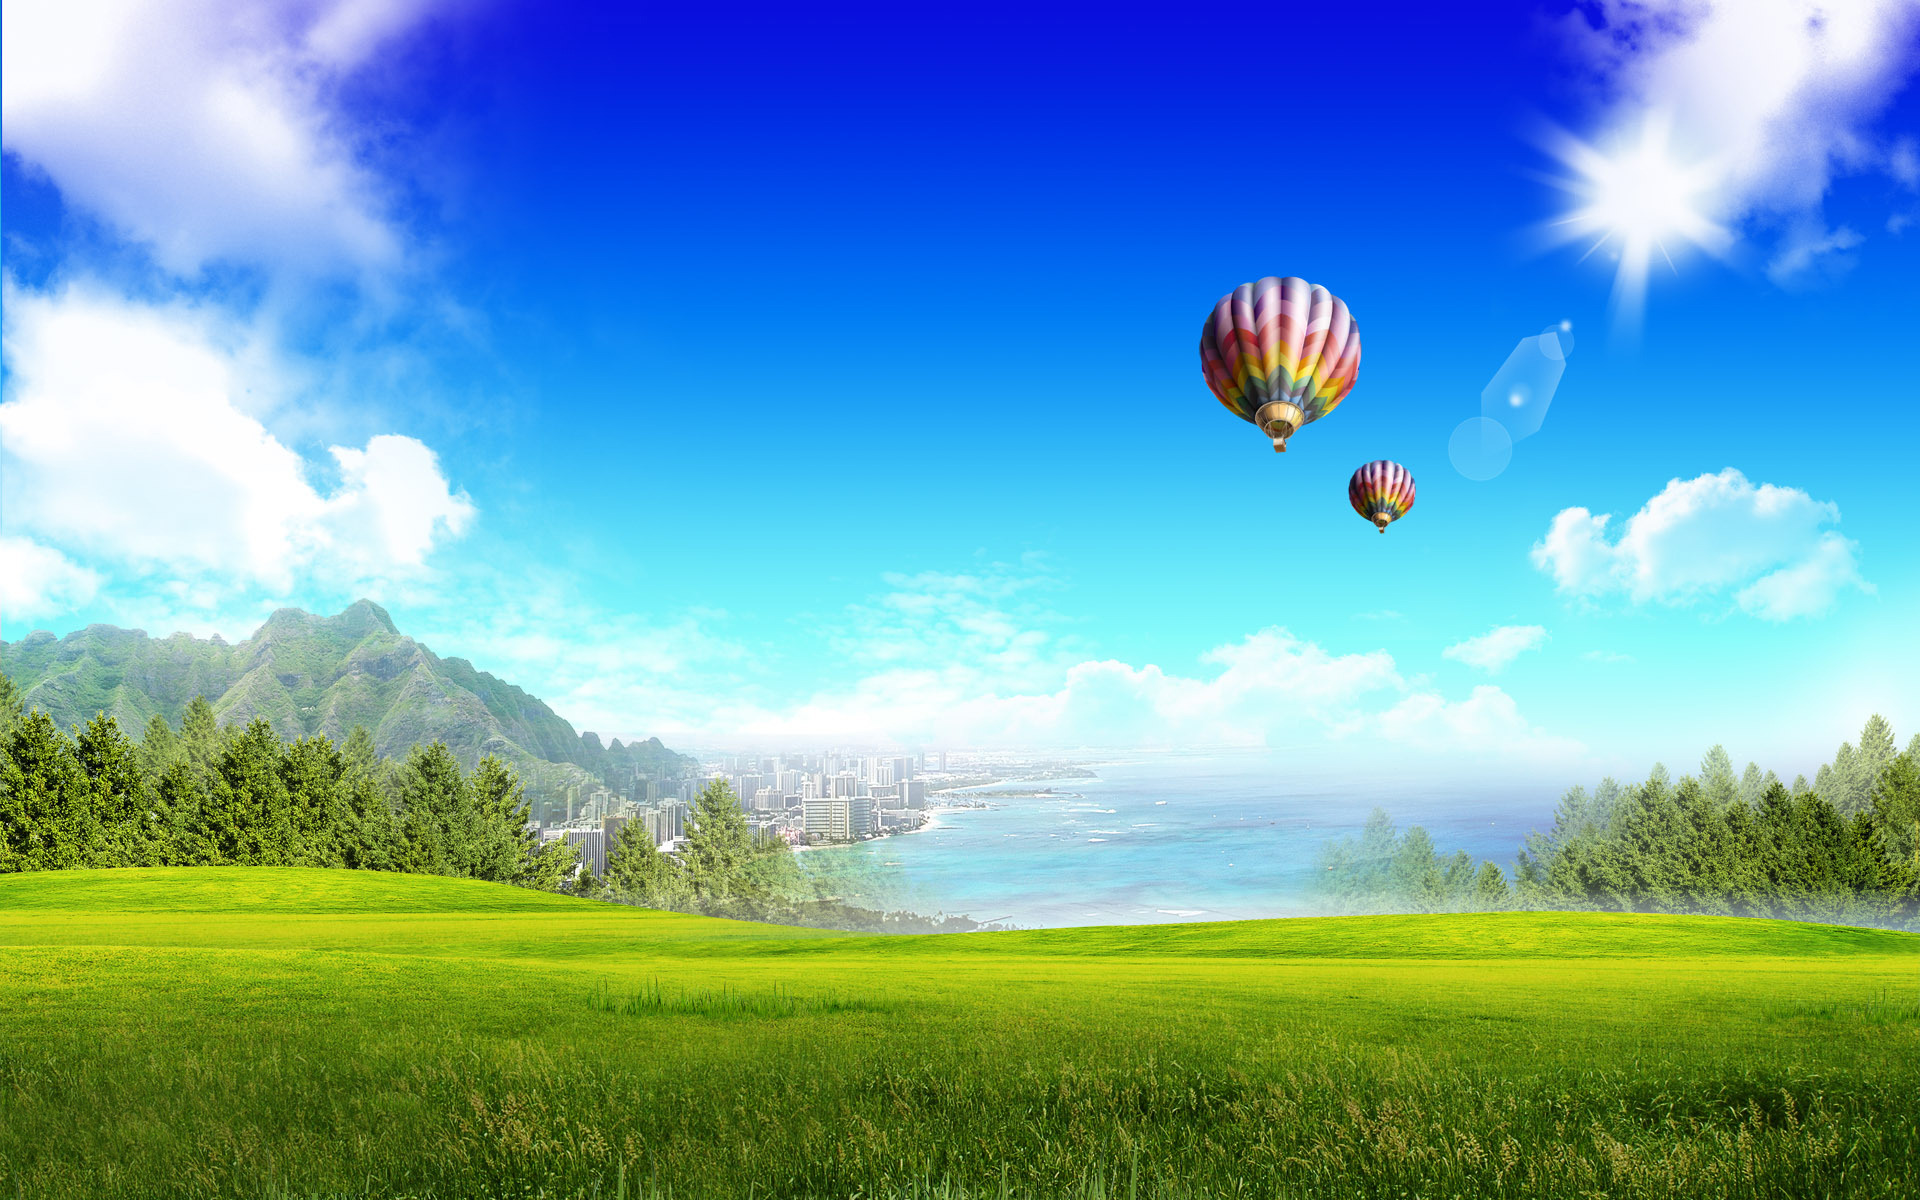 Hot air balloons over the meadow